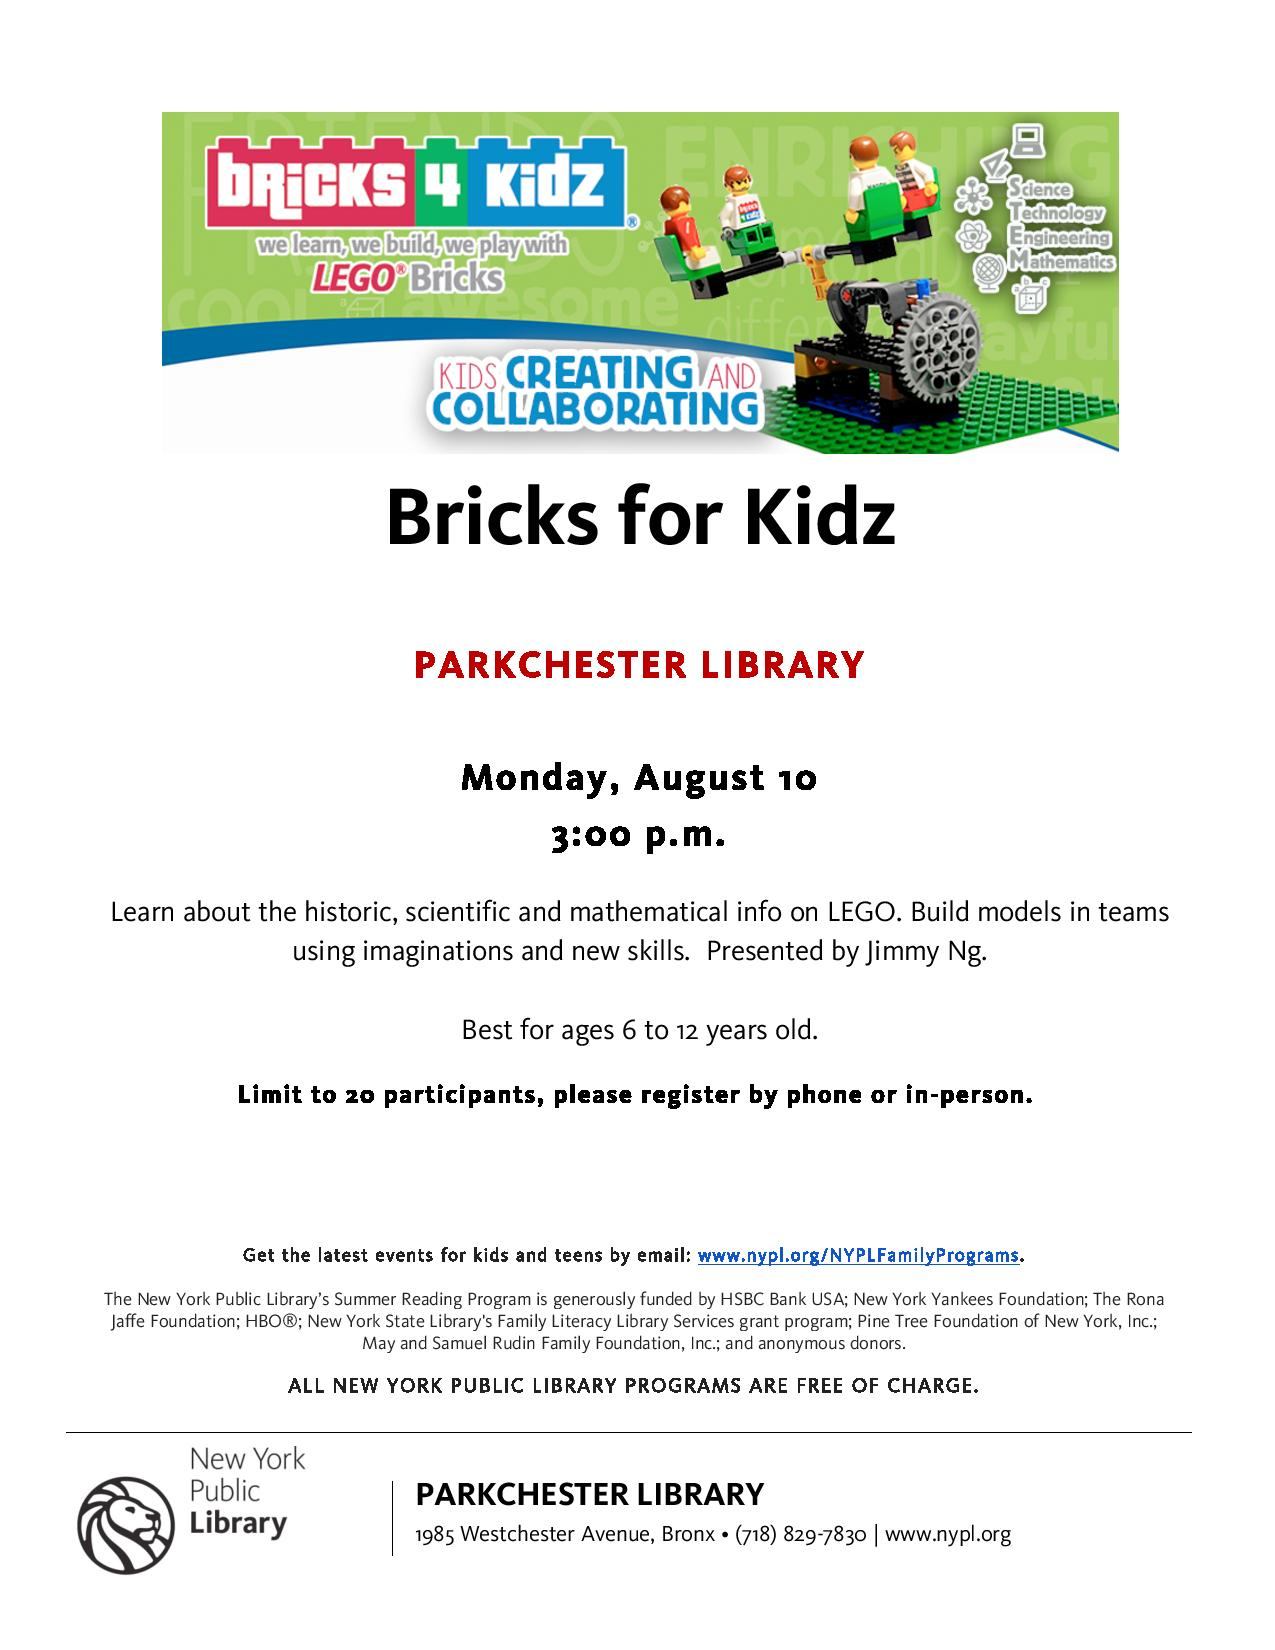 Bricks 4 Kidz Event at the Parkchester Library